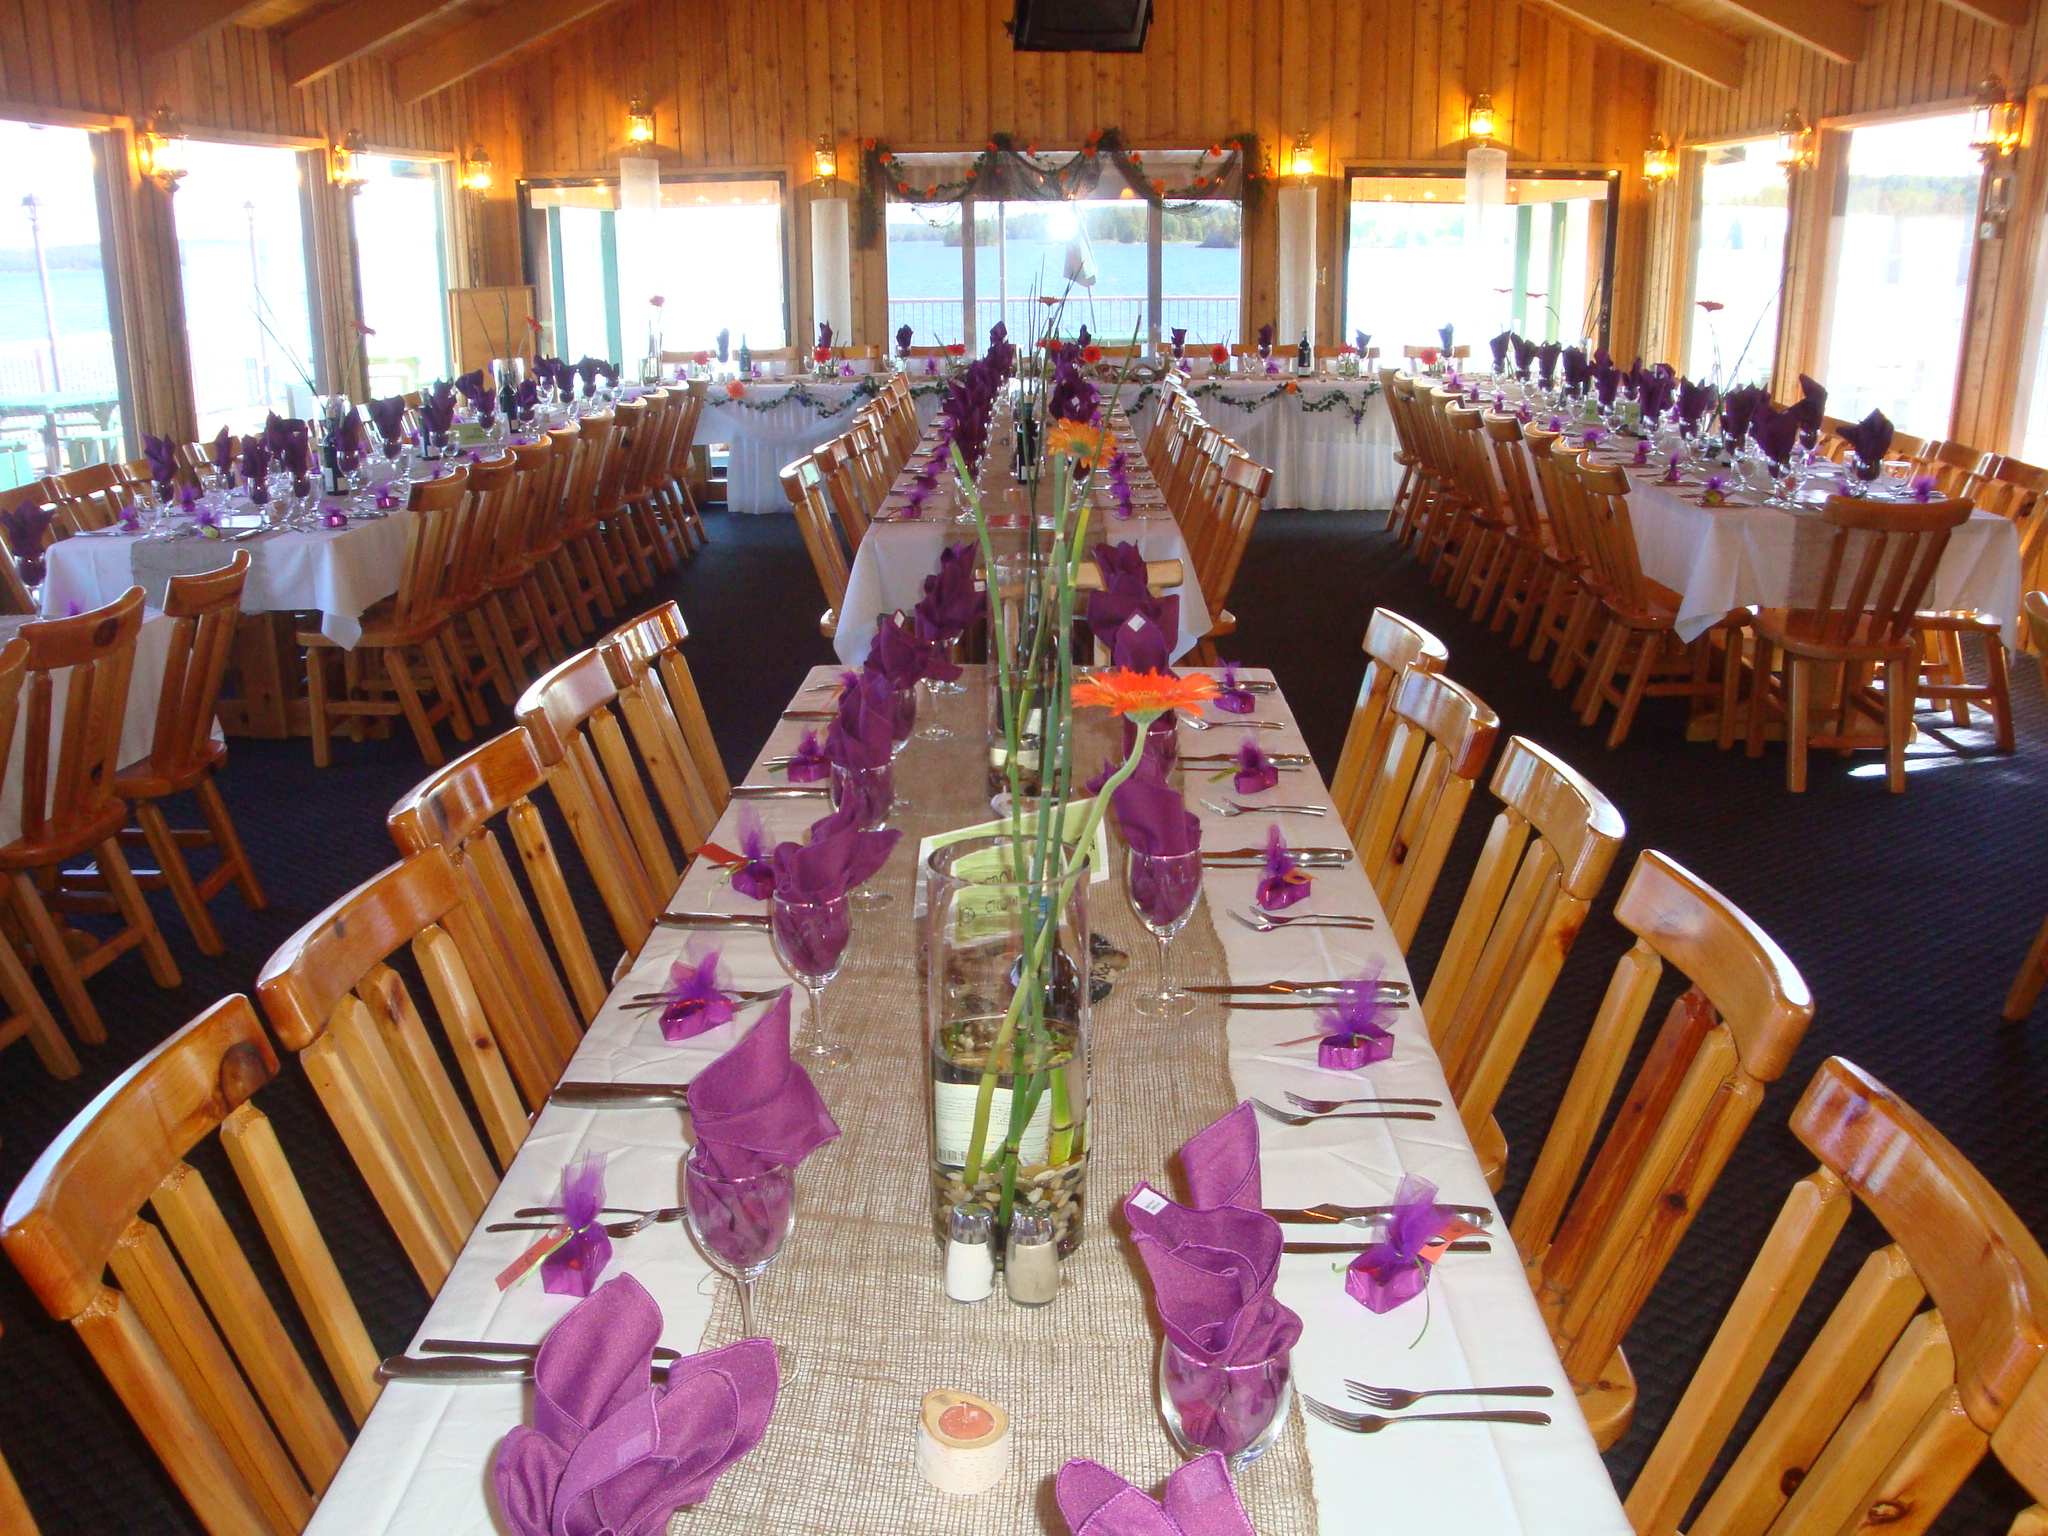 dining area set up for a special event with long tables and chairs